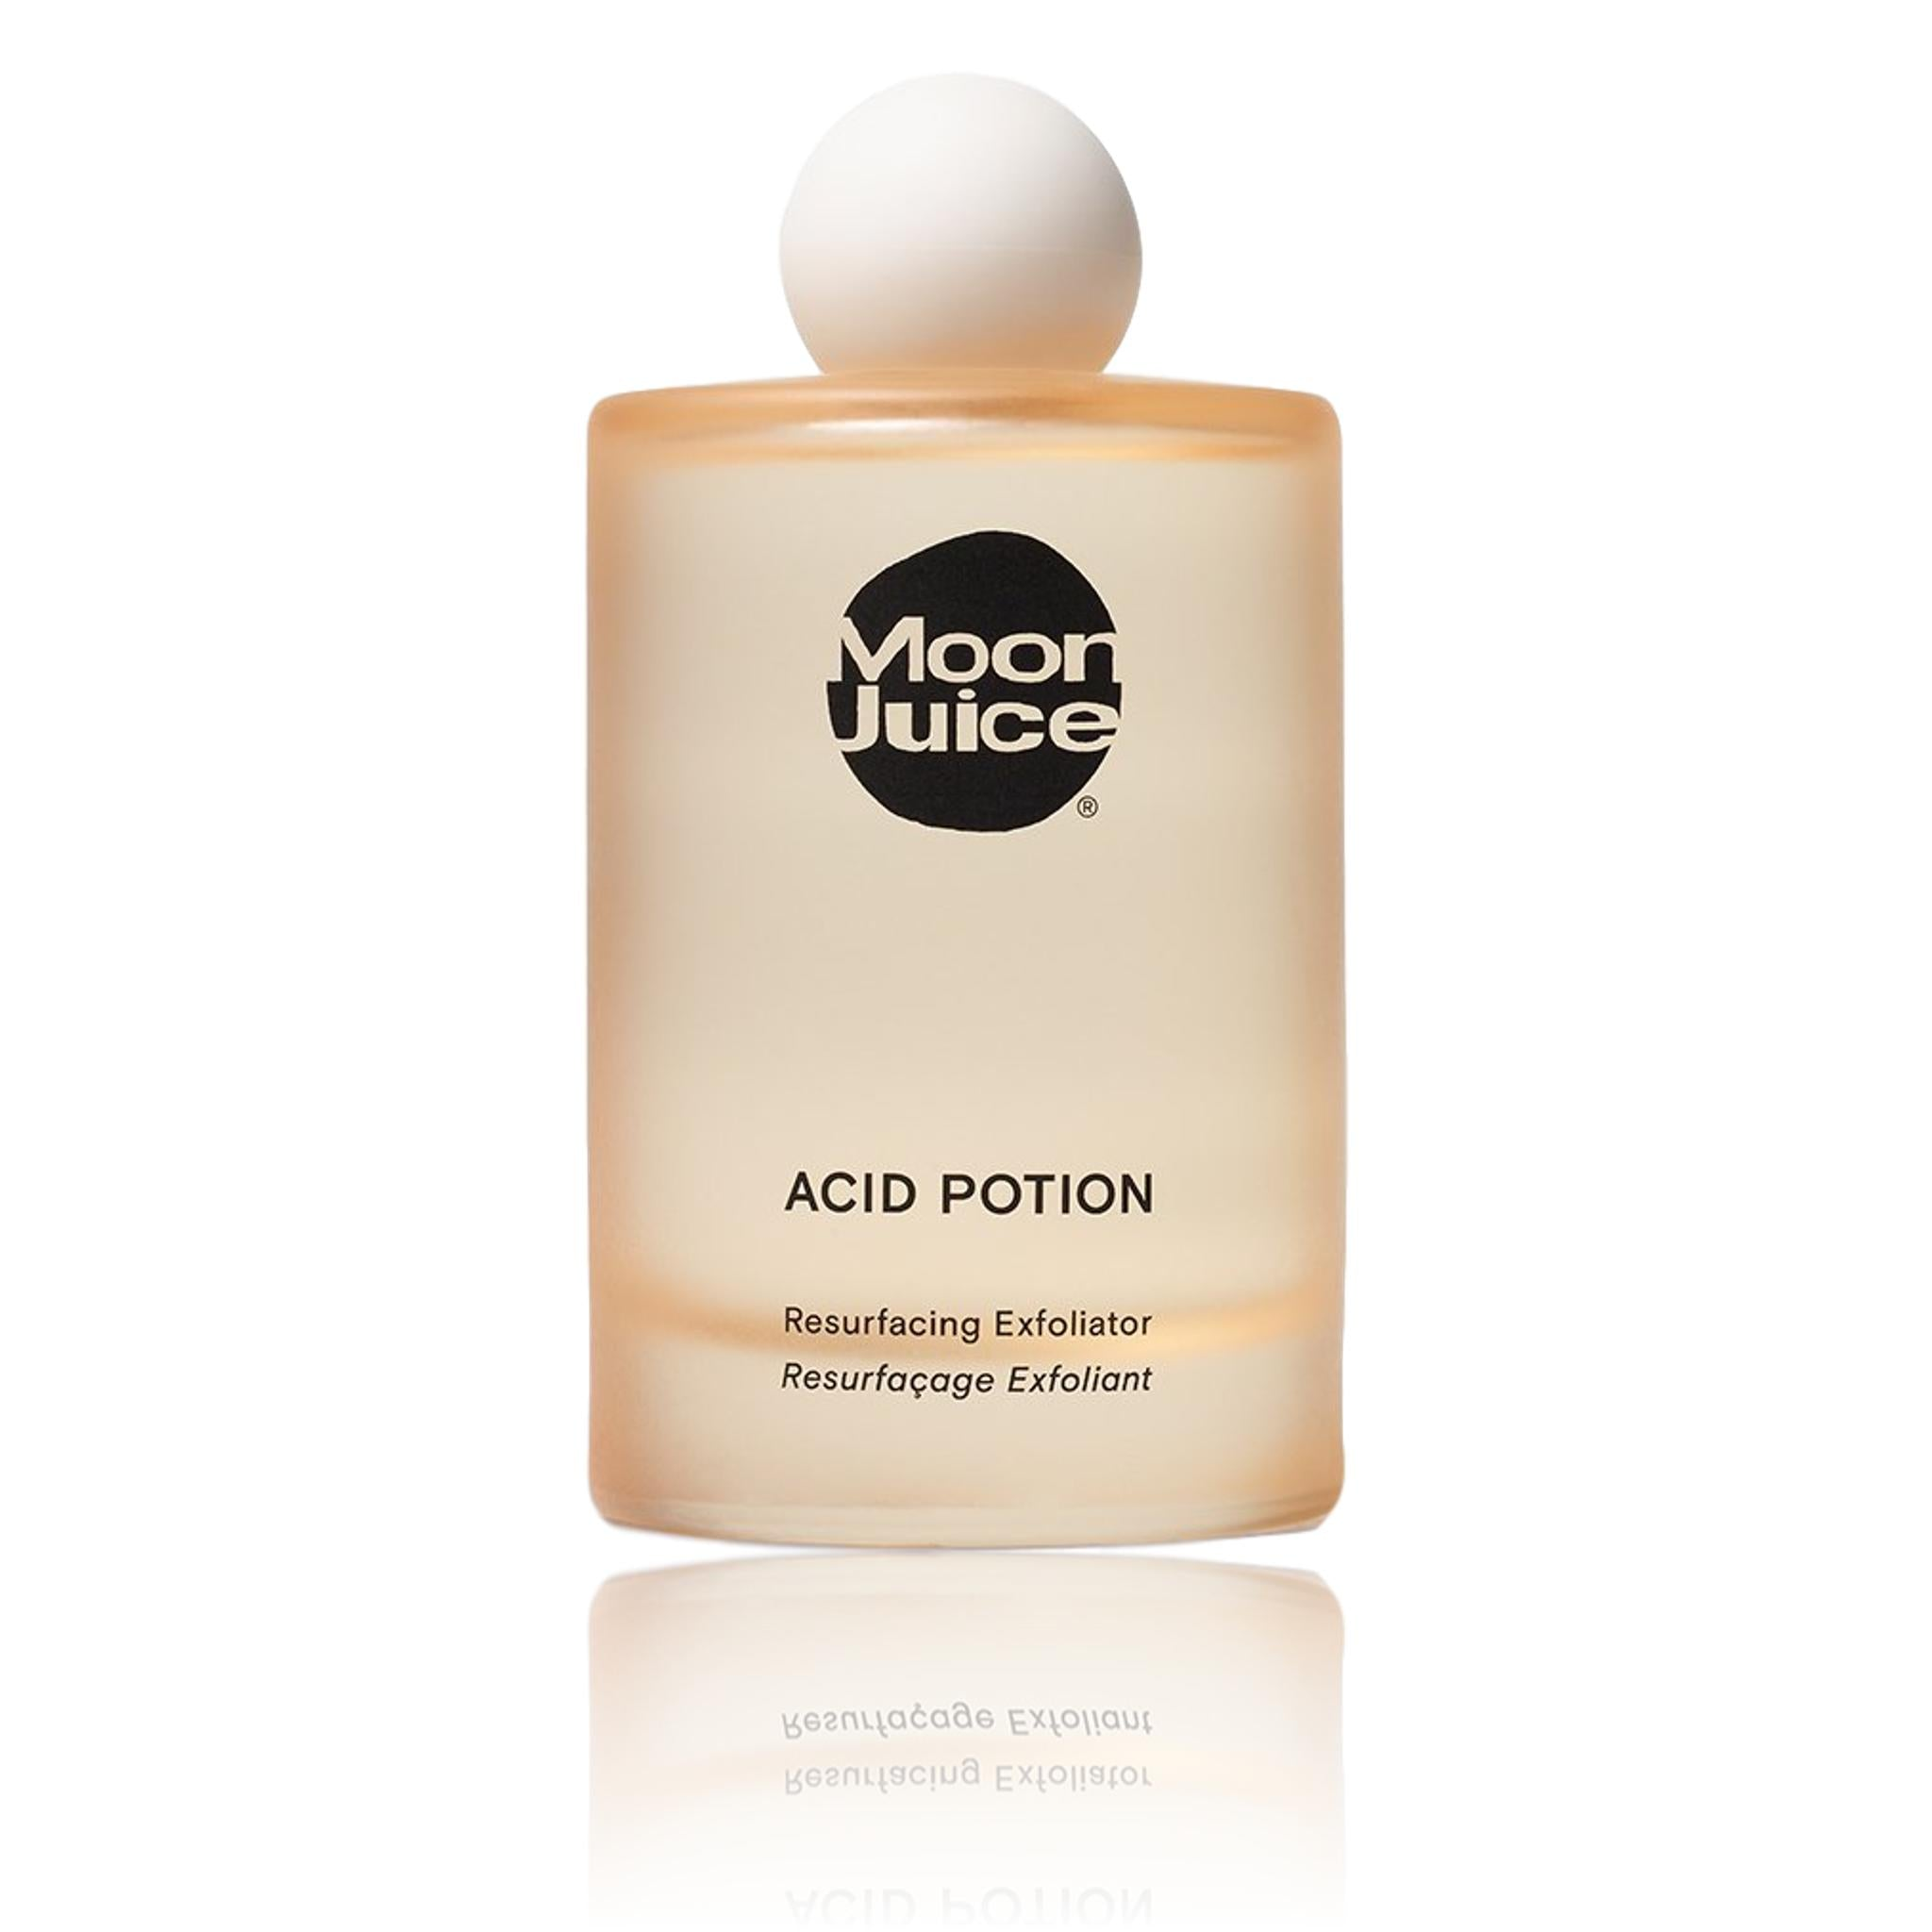 MOON JUICE Acid Potion Resurfacing Exfoliator, Skin Care, London Loves Beauty